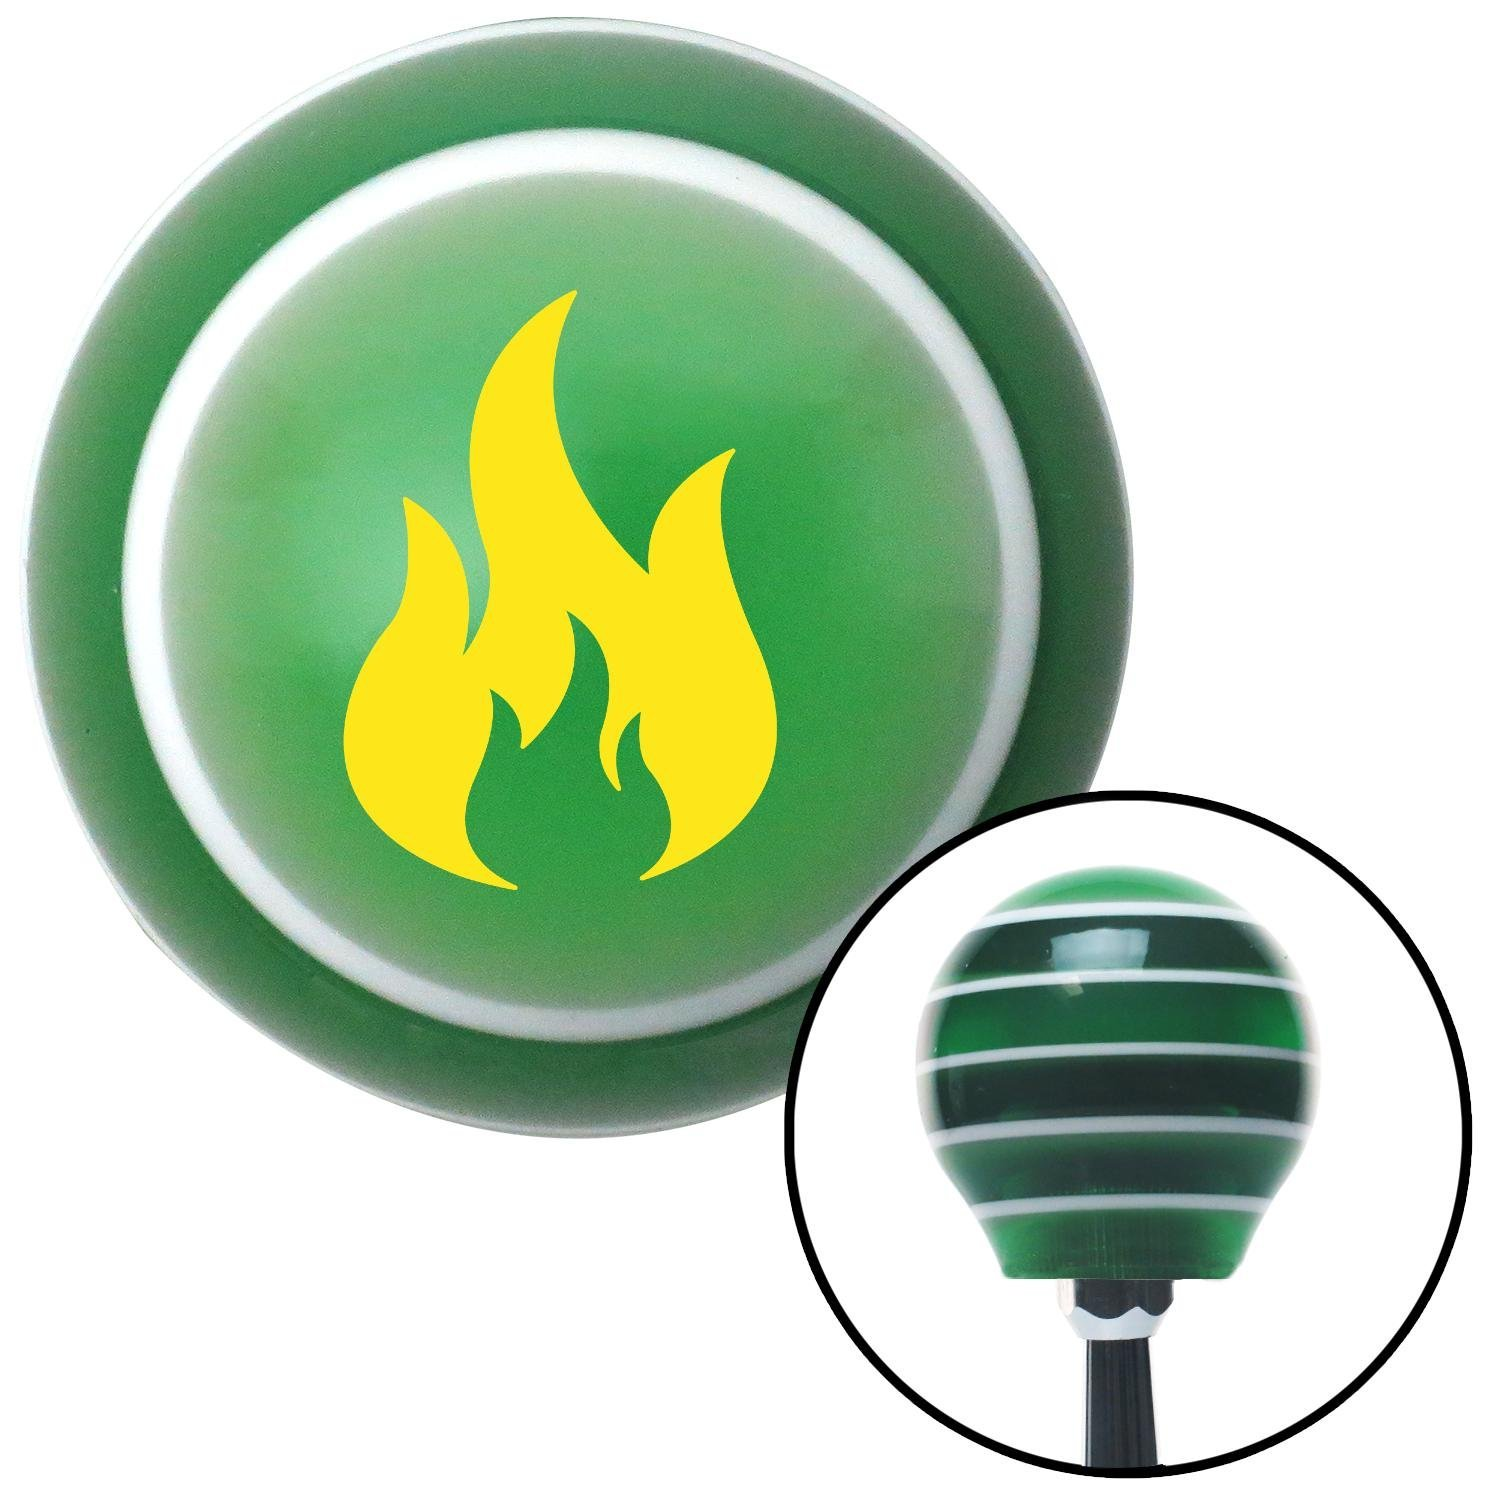 American Shifter 122309 Green Stripe Shift Knob with M16 x 1.5 Insert Yellow Flames